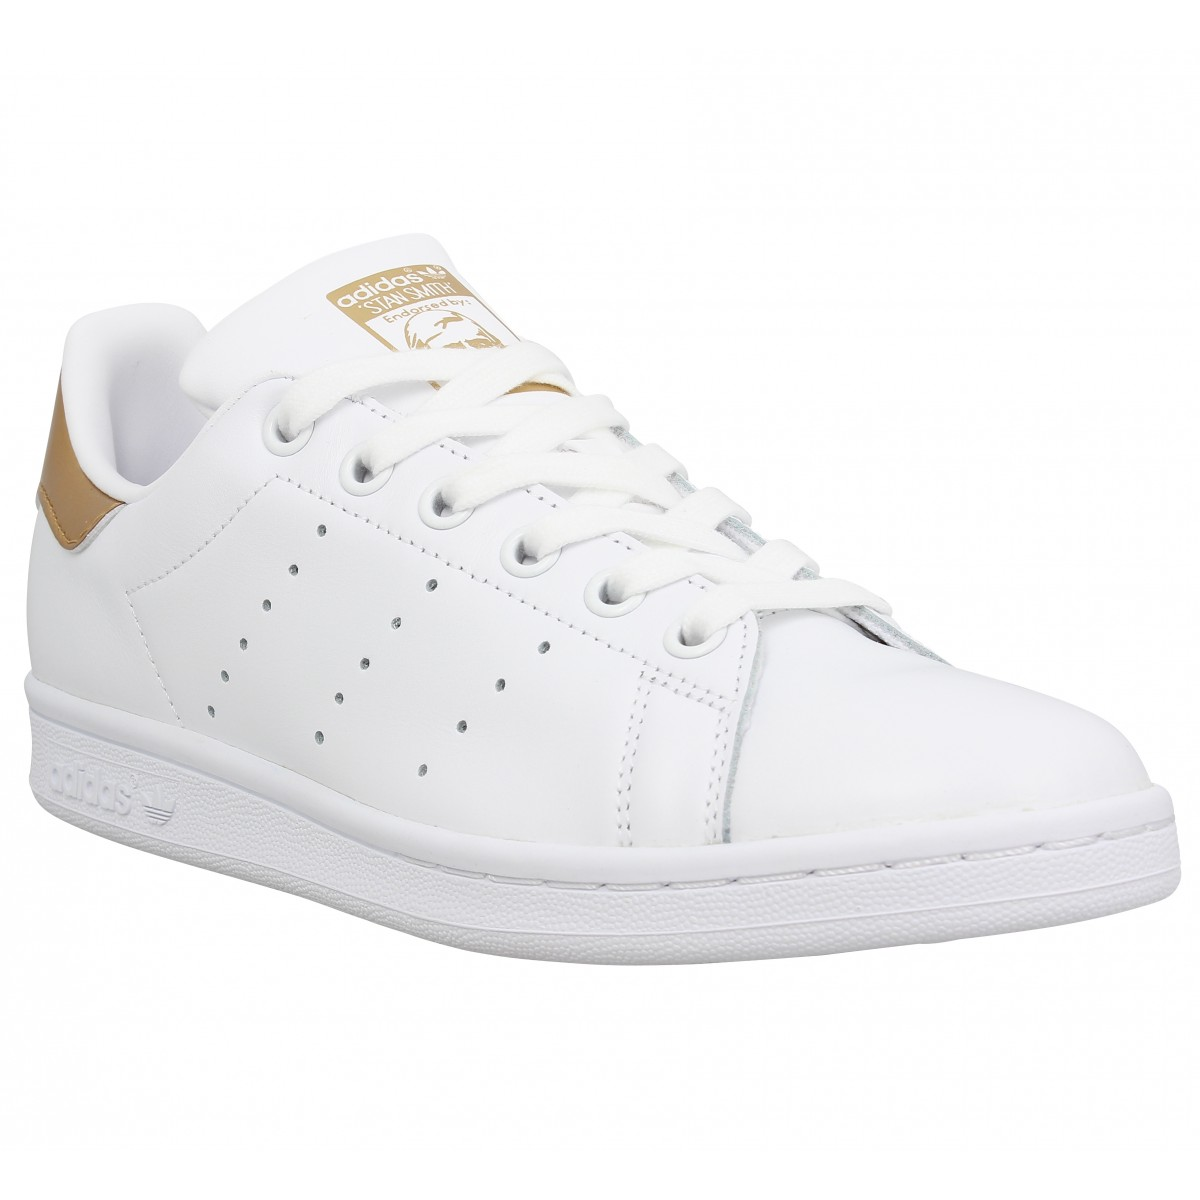 ADIDAS Stan Smith cuir Femme Blanc Or